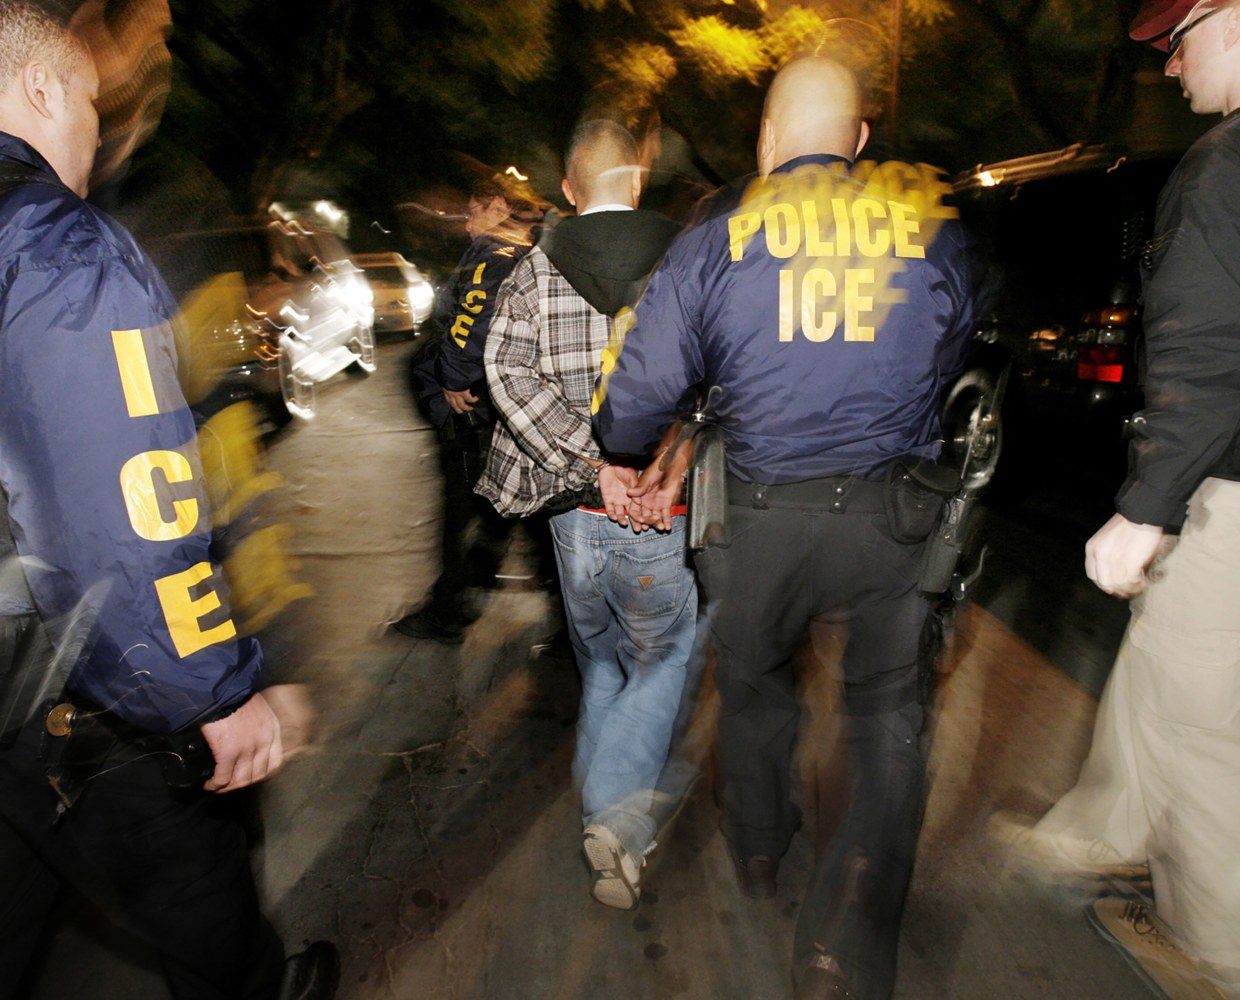 ICE Cracks Down on Sanctuary Cities - Arrests Nearly 500 on Immigration Charges